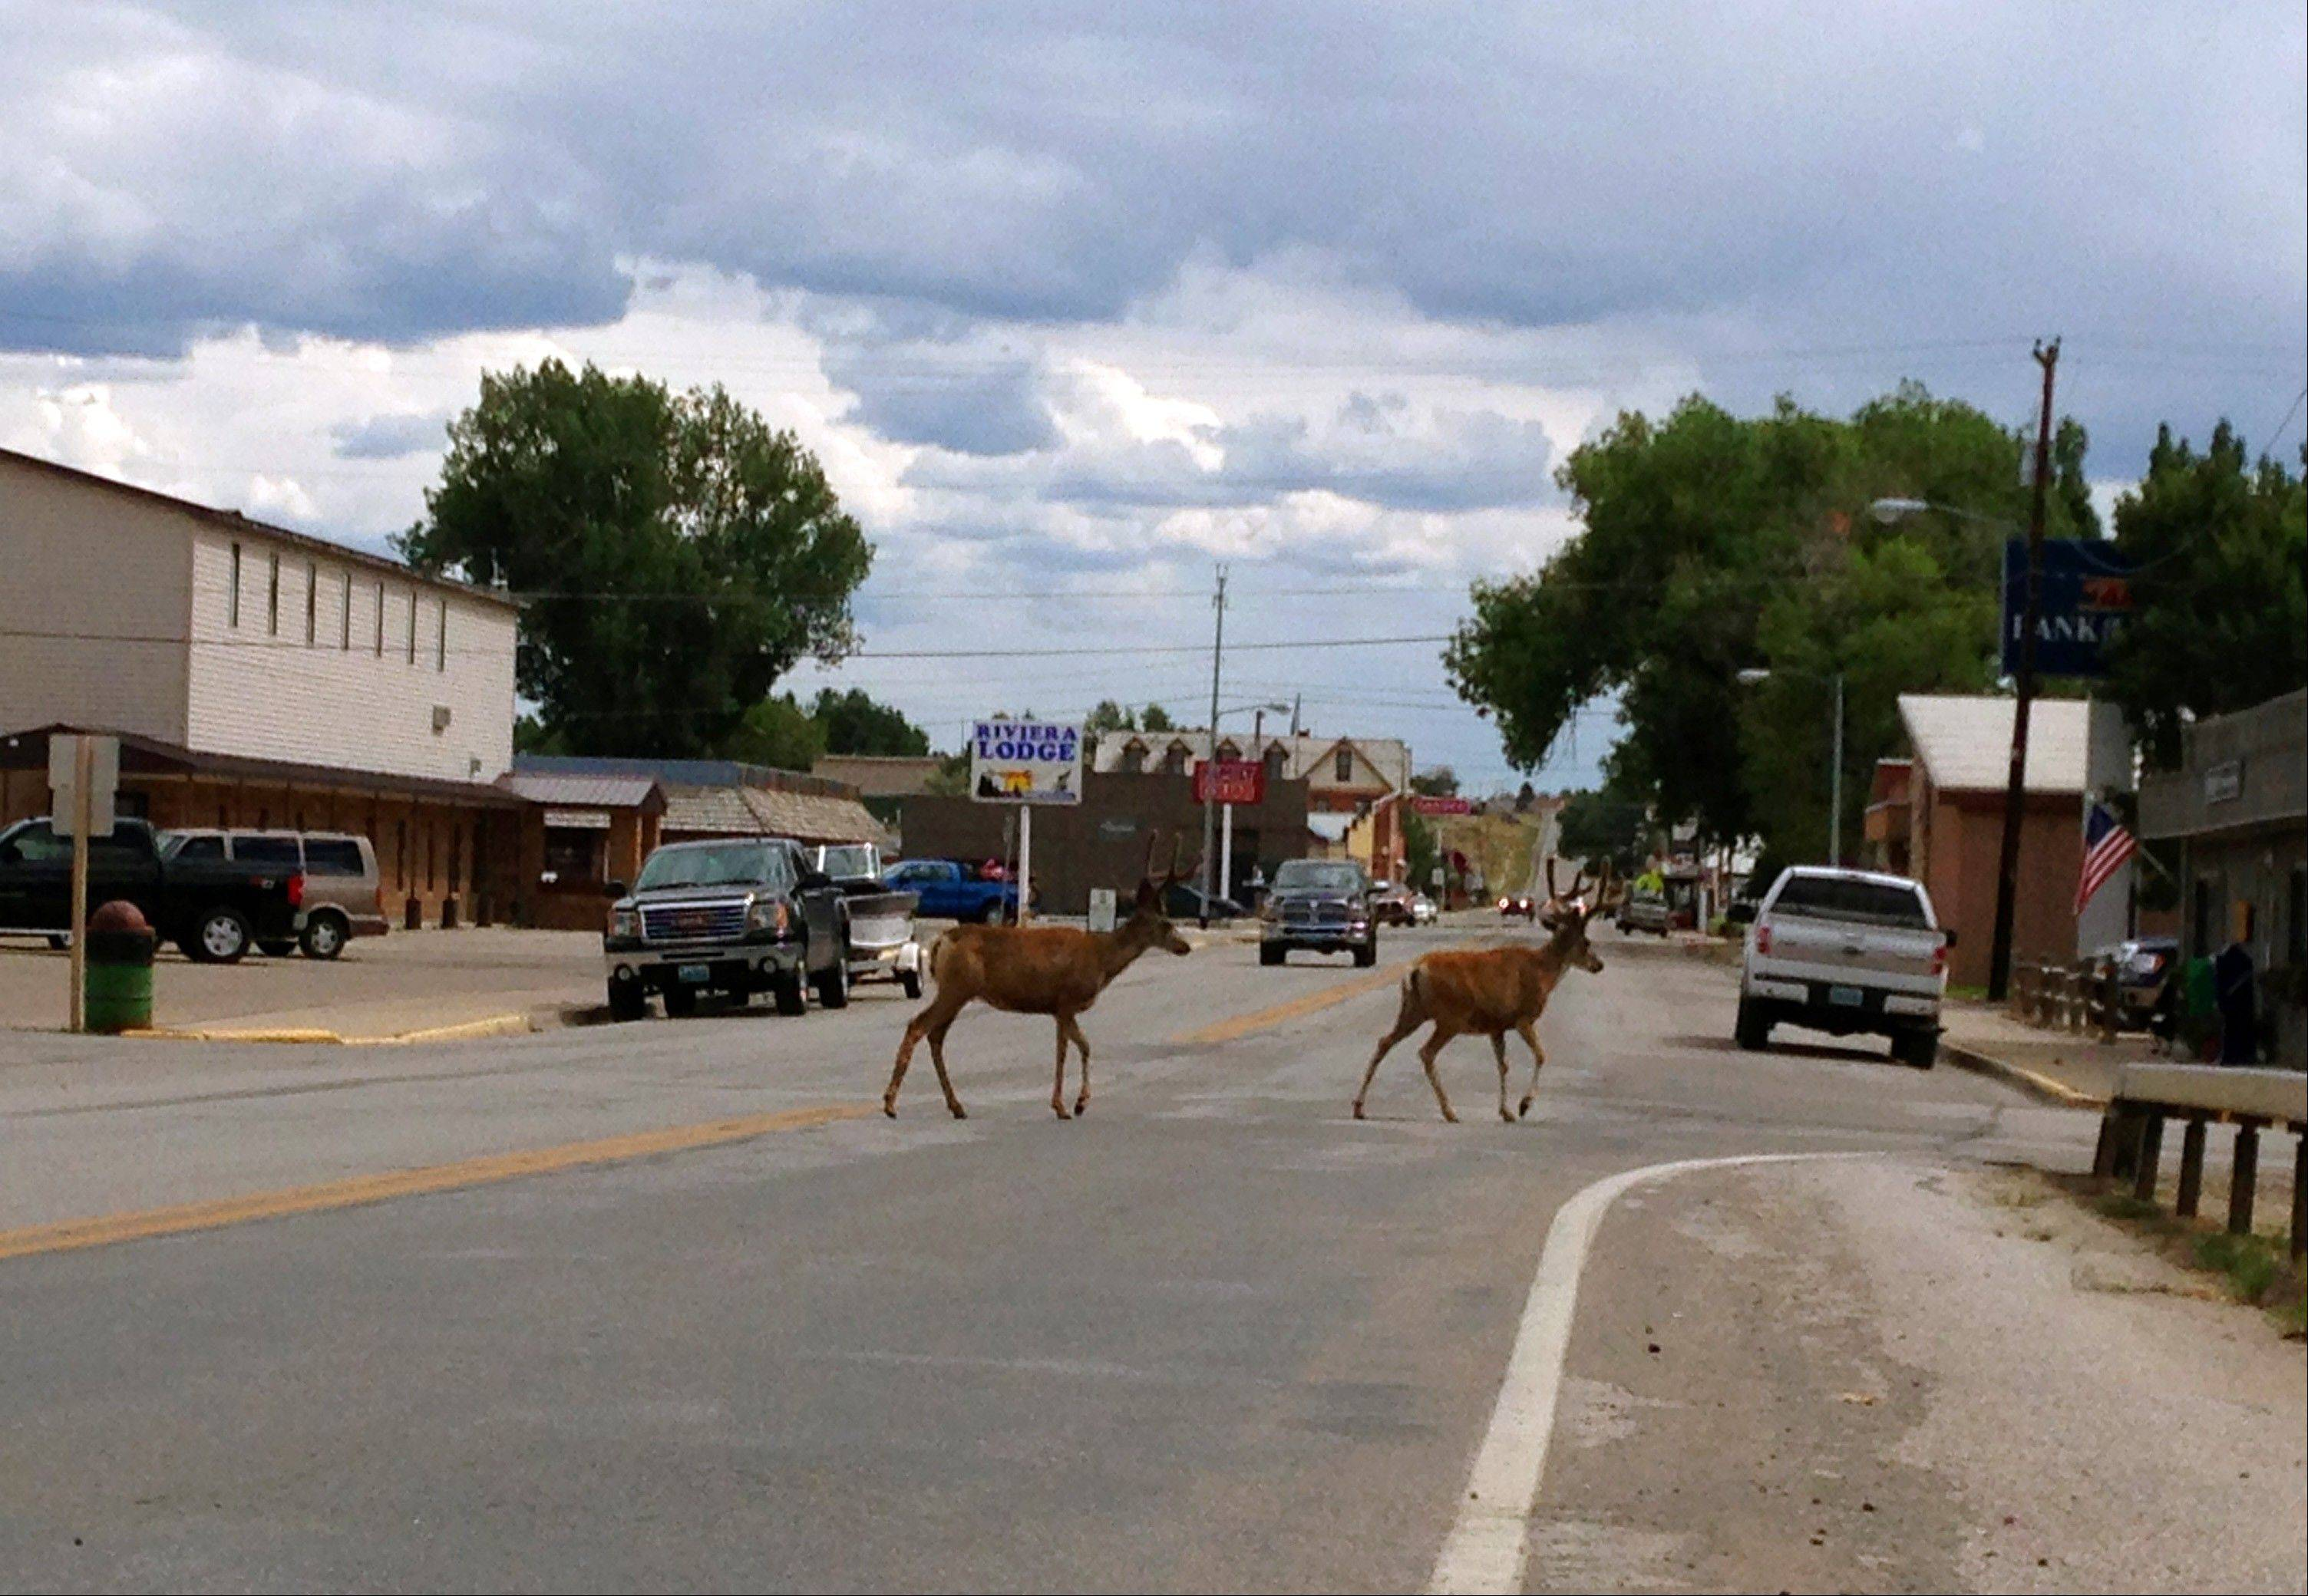 A deer crosses the street in downtown Saratoga, Wyo.